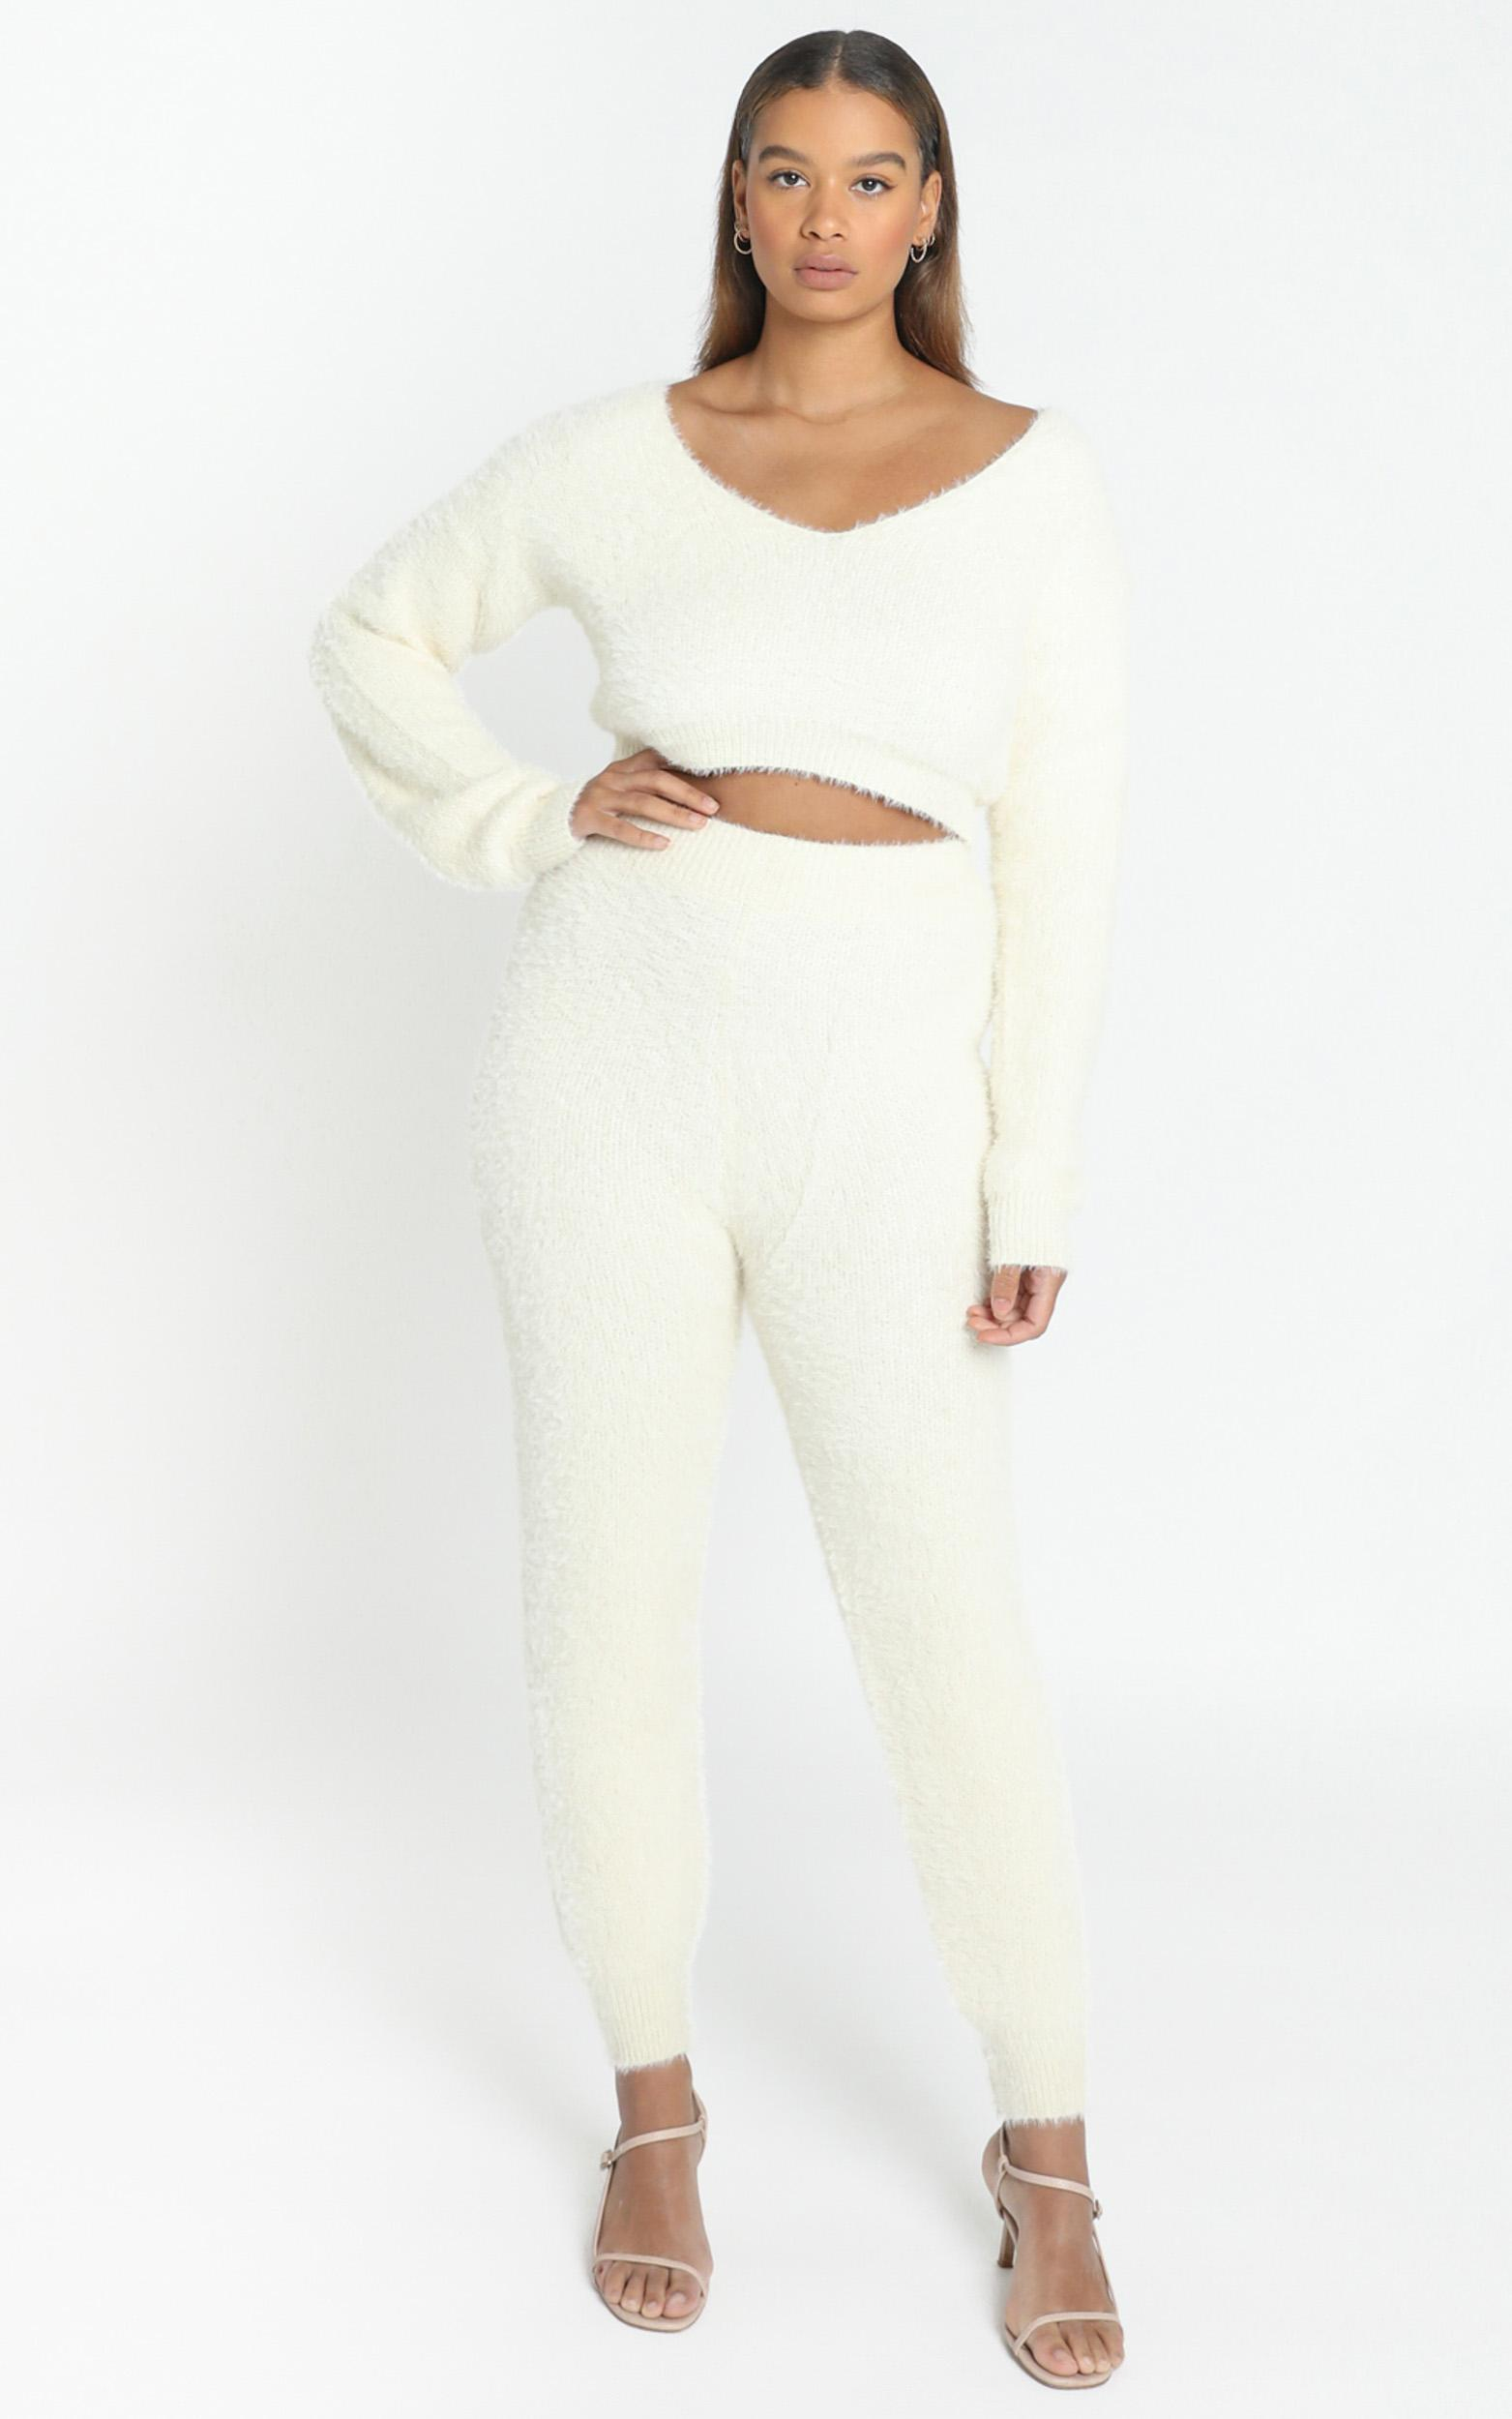 Carey Knit Pants in Cream - 8 (S), CRE1, hi-res image number null